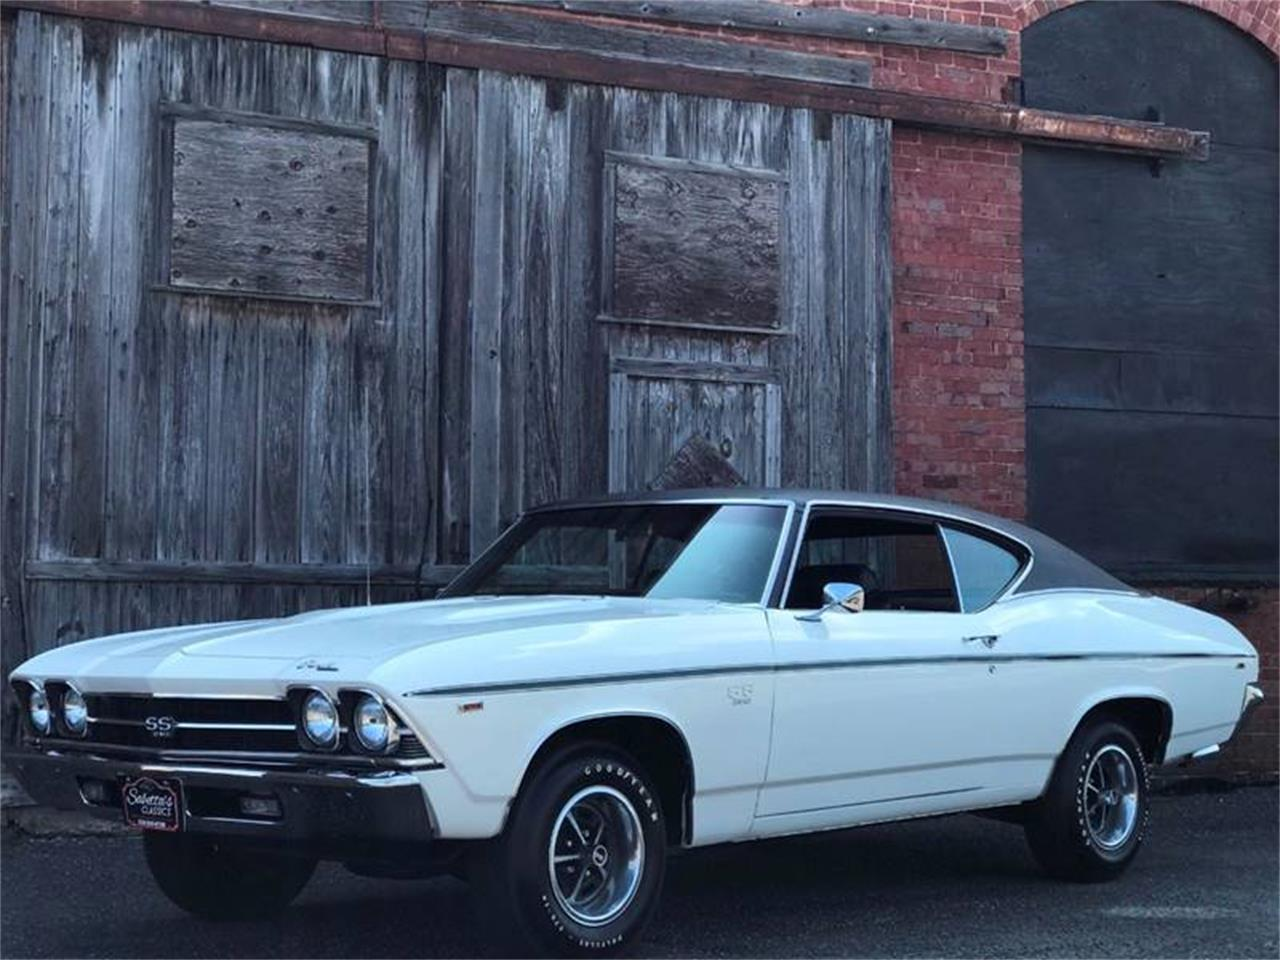 1969 Chevrolet Chevelle for sale in Orville, OH – photo 4